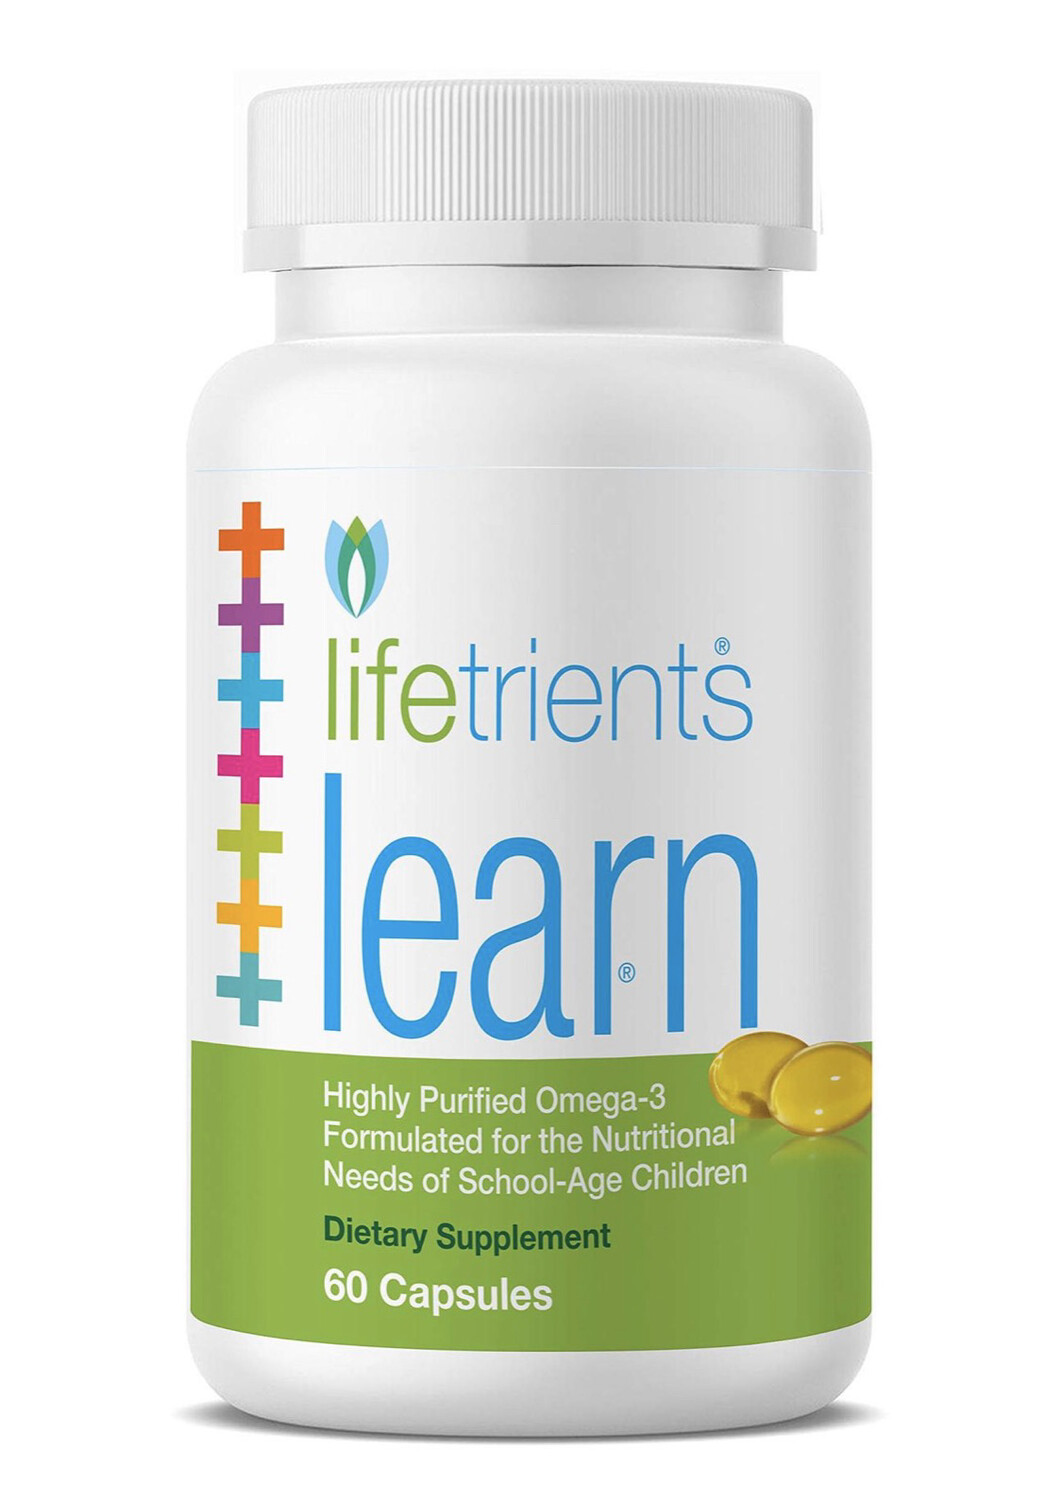 Learn – 60 Capsules – Highly Purified Omega-3